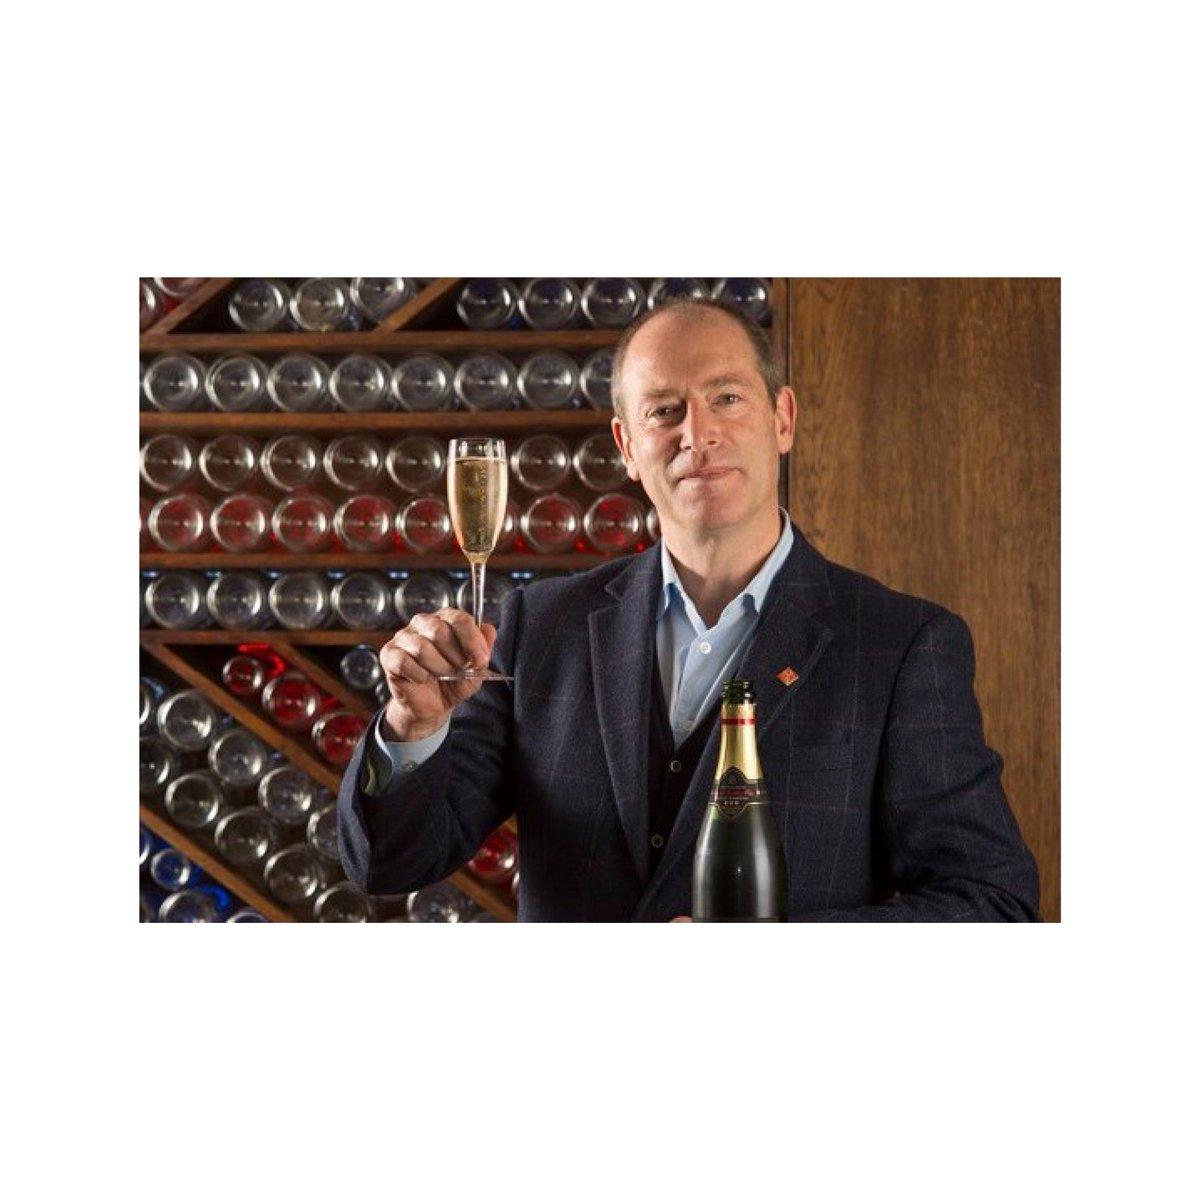 ... for An Evening with Frazer Thompson, CEO of @ChapelDownWines https://www.theclubhouselondon.com/news-events/evening-frazer-thompson-ceo-chapel-group … ...